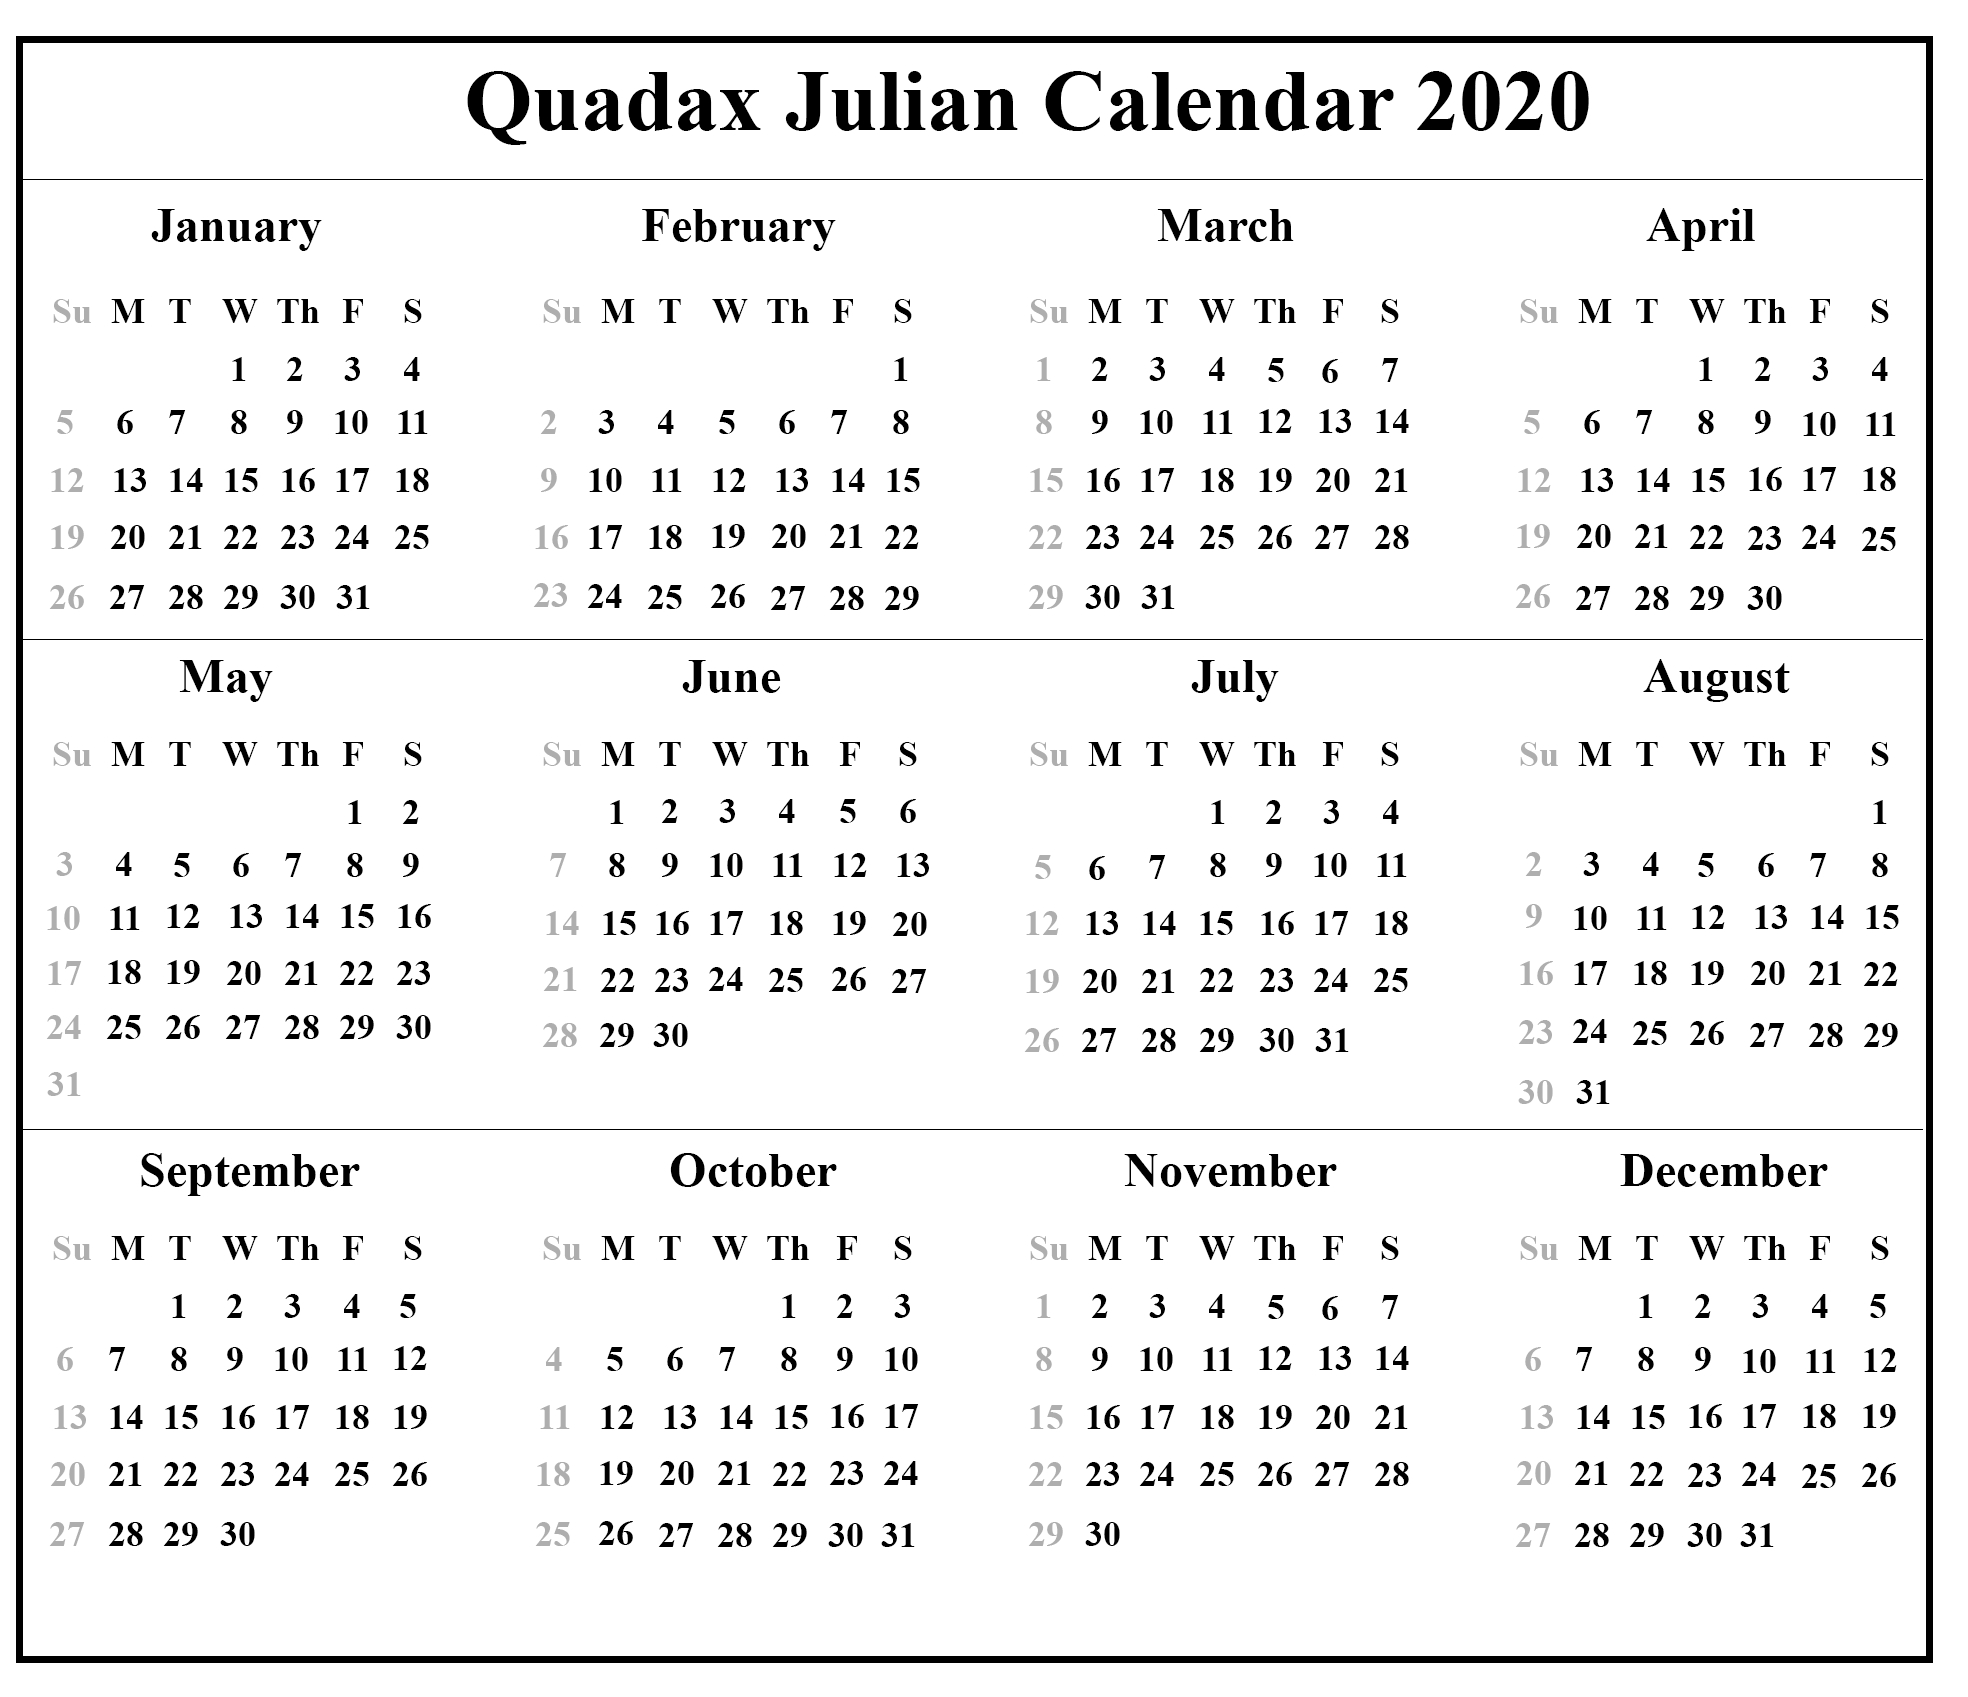 Free Printable Julian Calendar 2020 Template | Printable intended for Julian Calendar Pdf